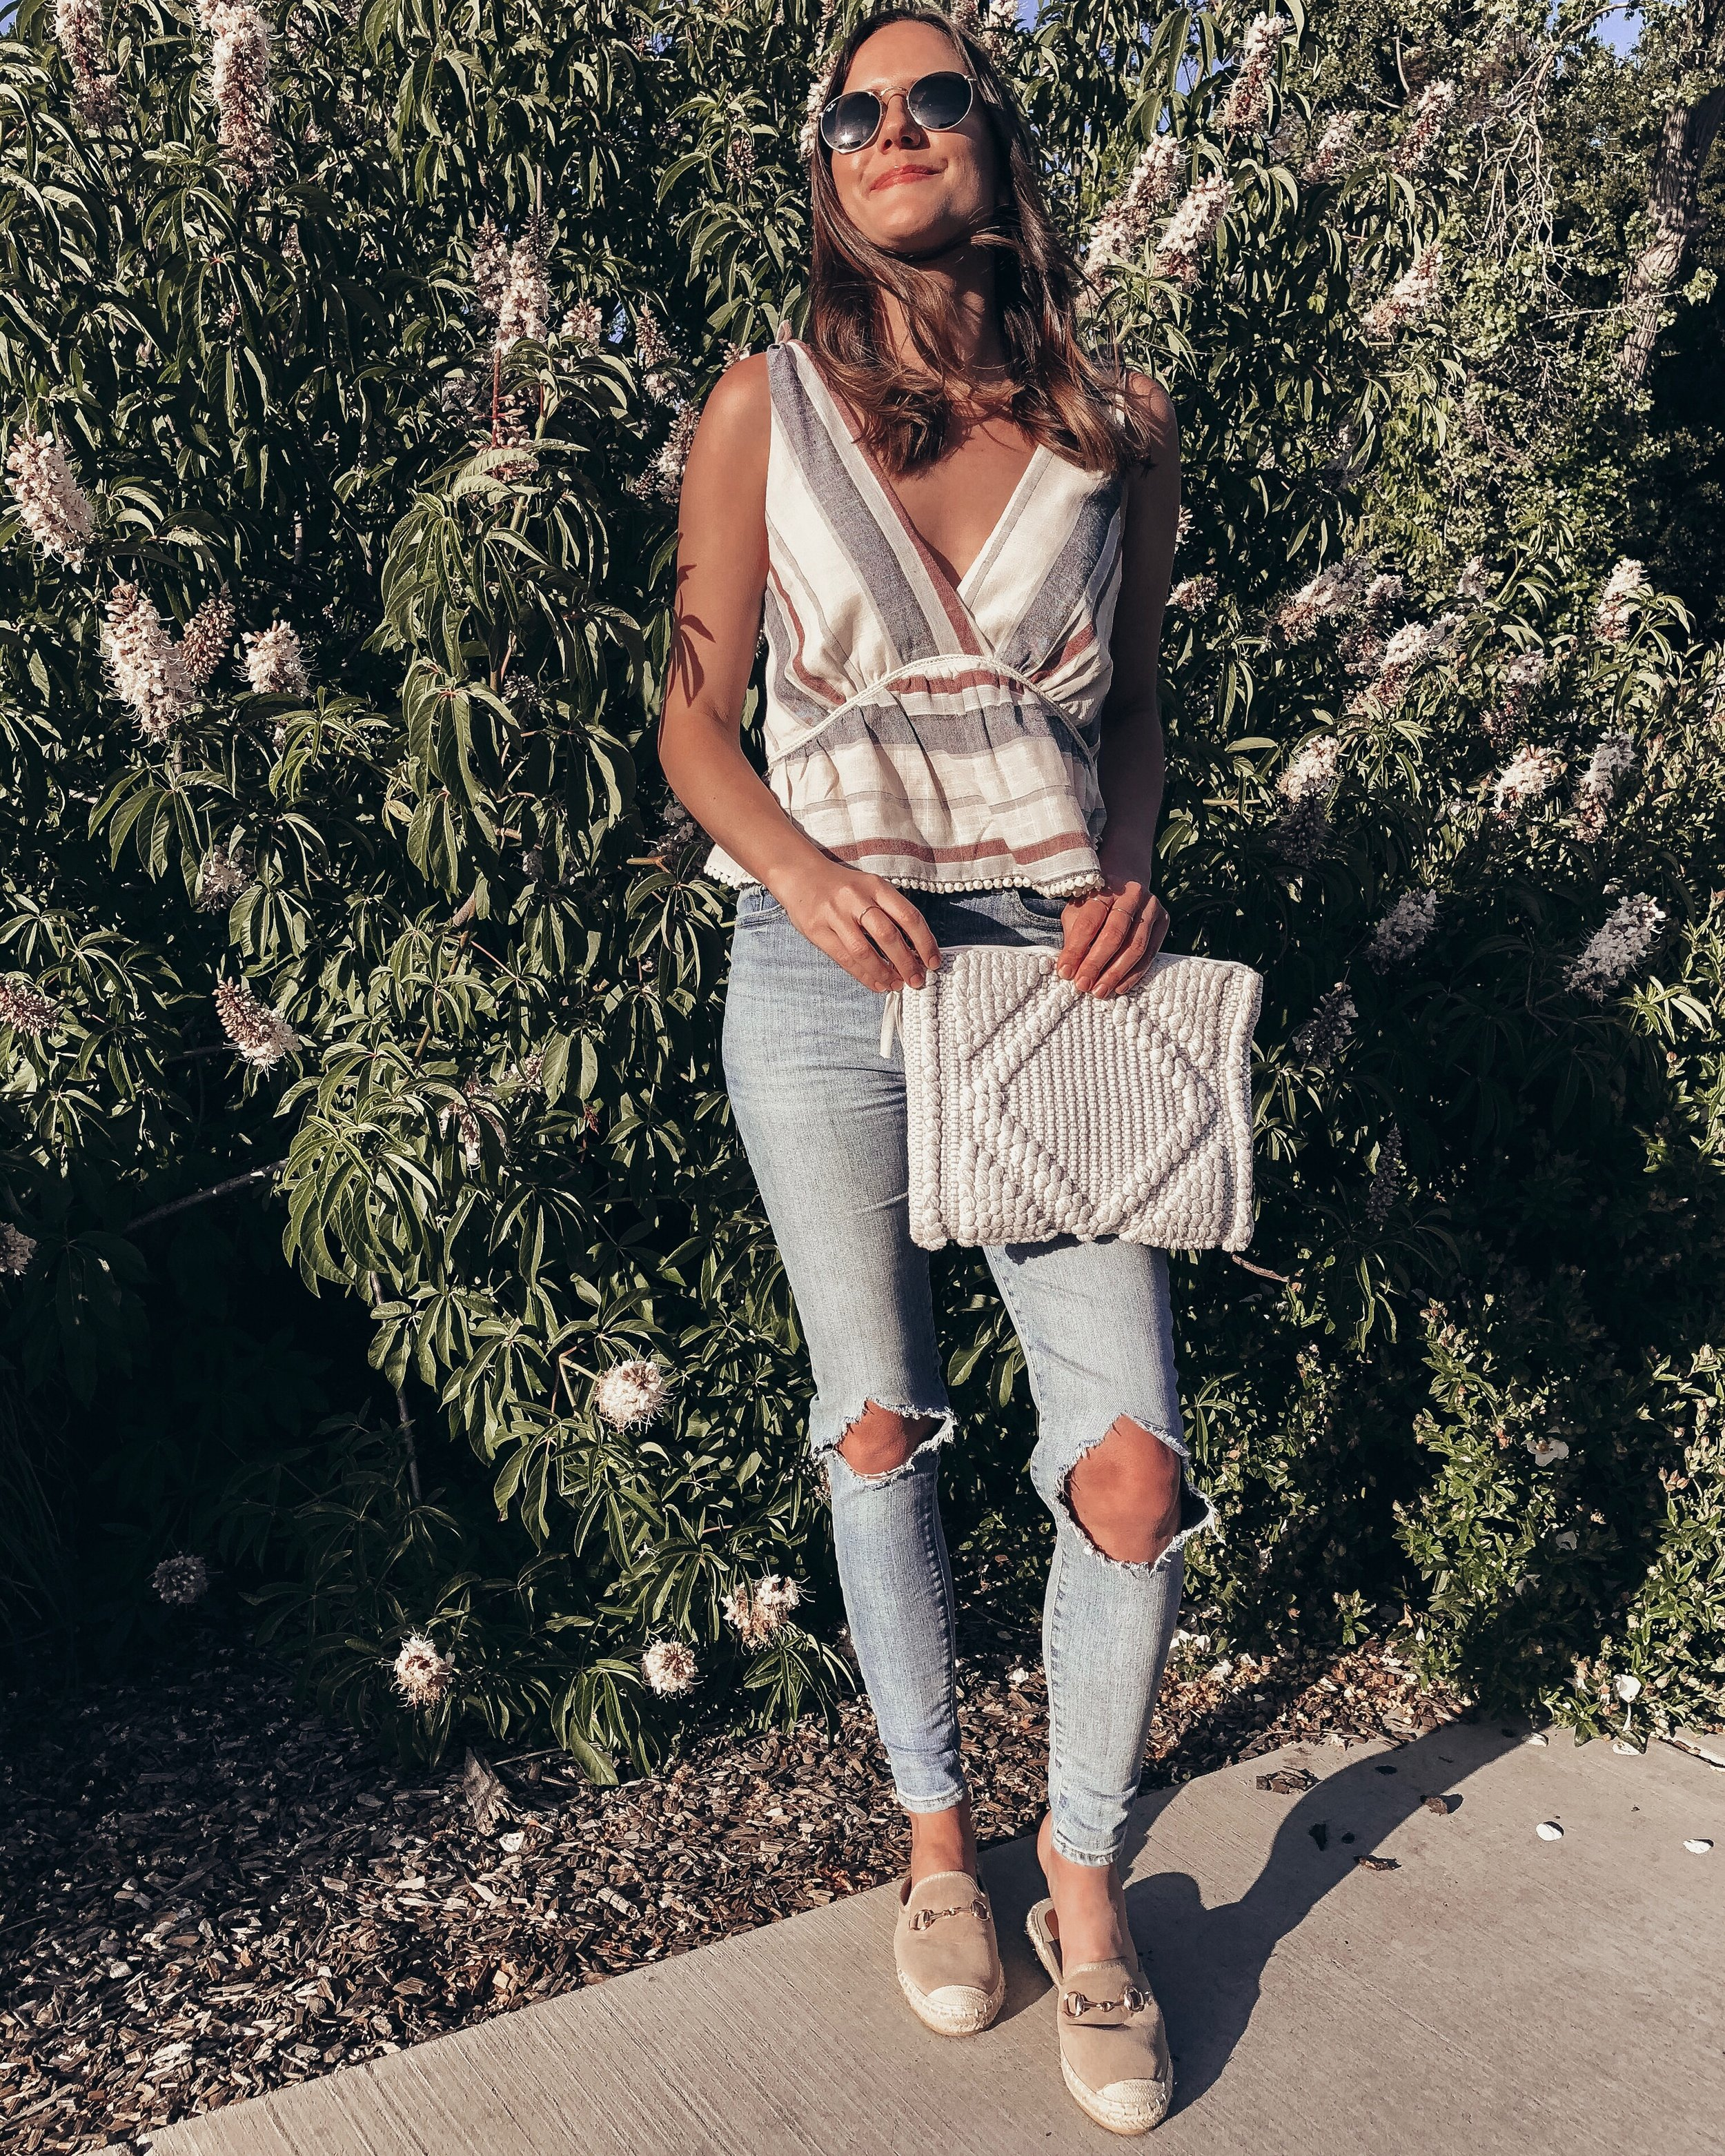 Outfit Details:  Vici Top  c/o |  Levi's Jeans  |  Vici Shoes  c/o |  Vici Bag  c/o |  Ray-Ban Sunglasses